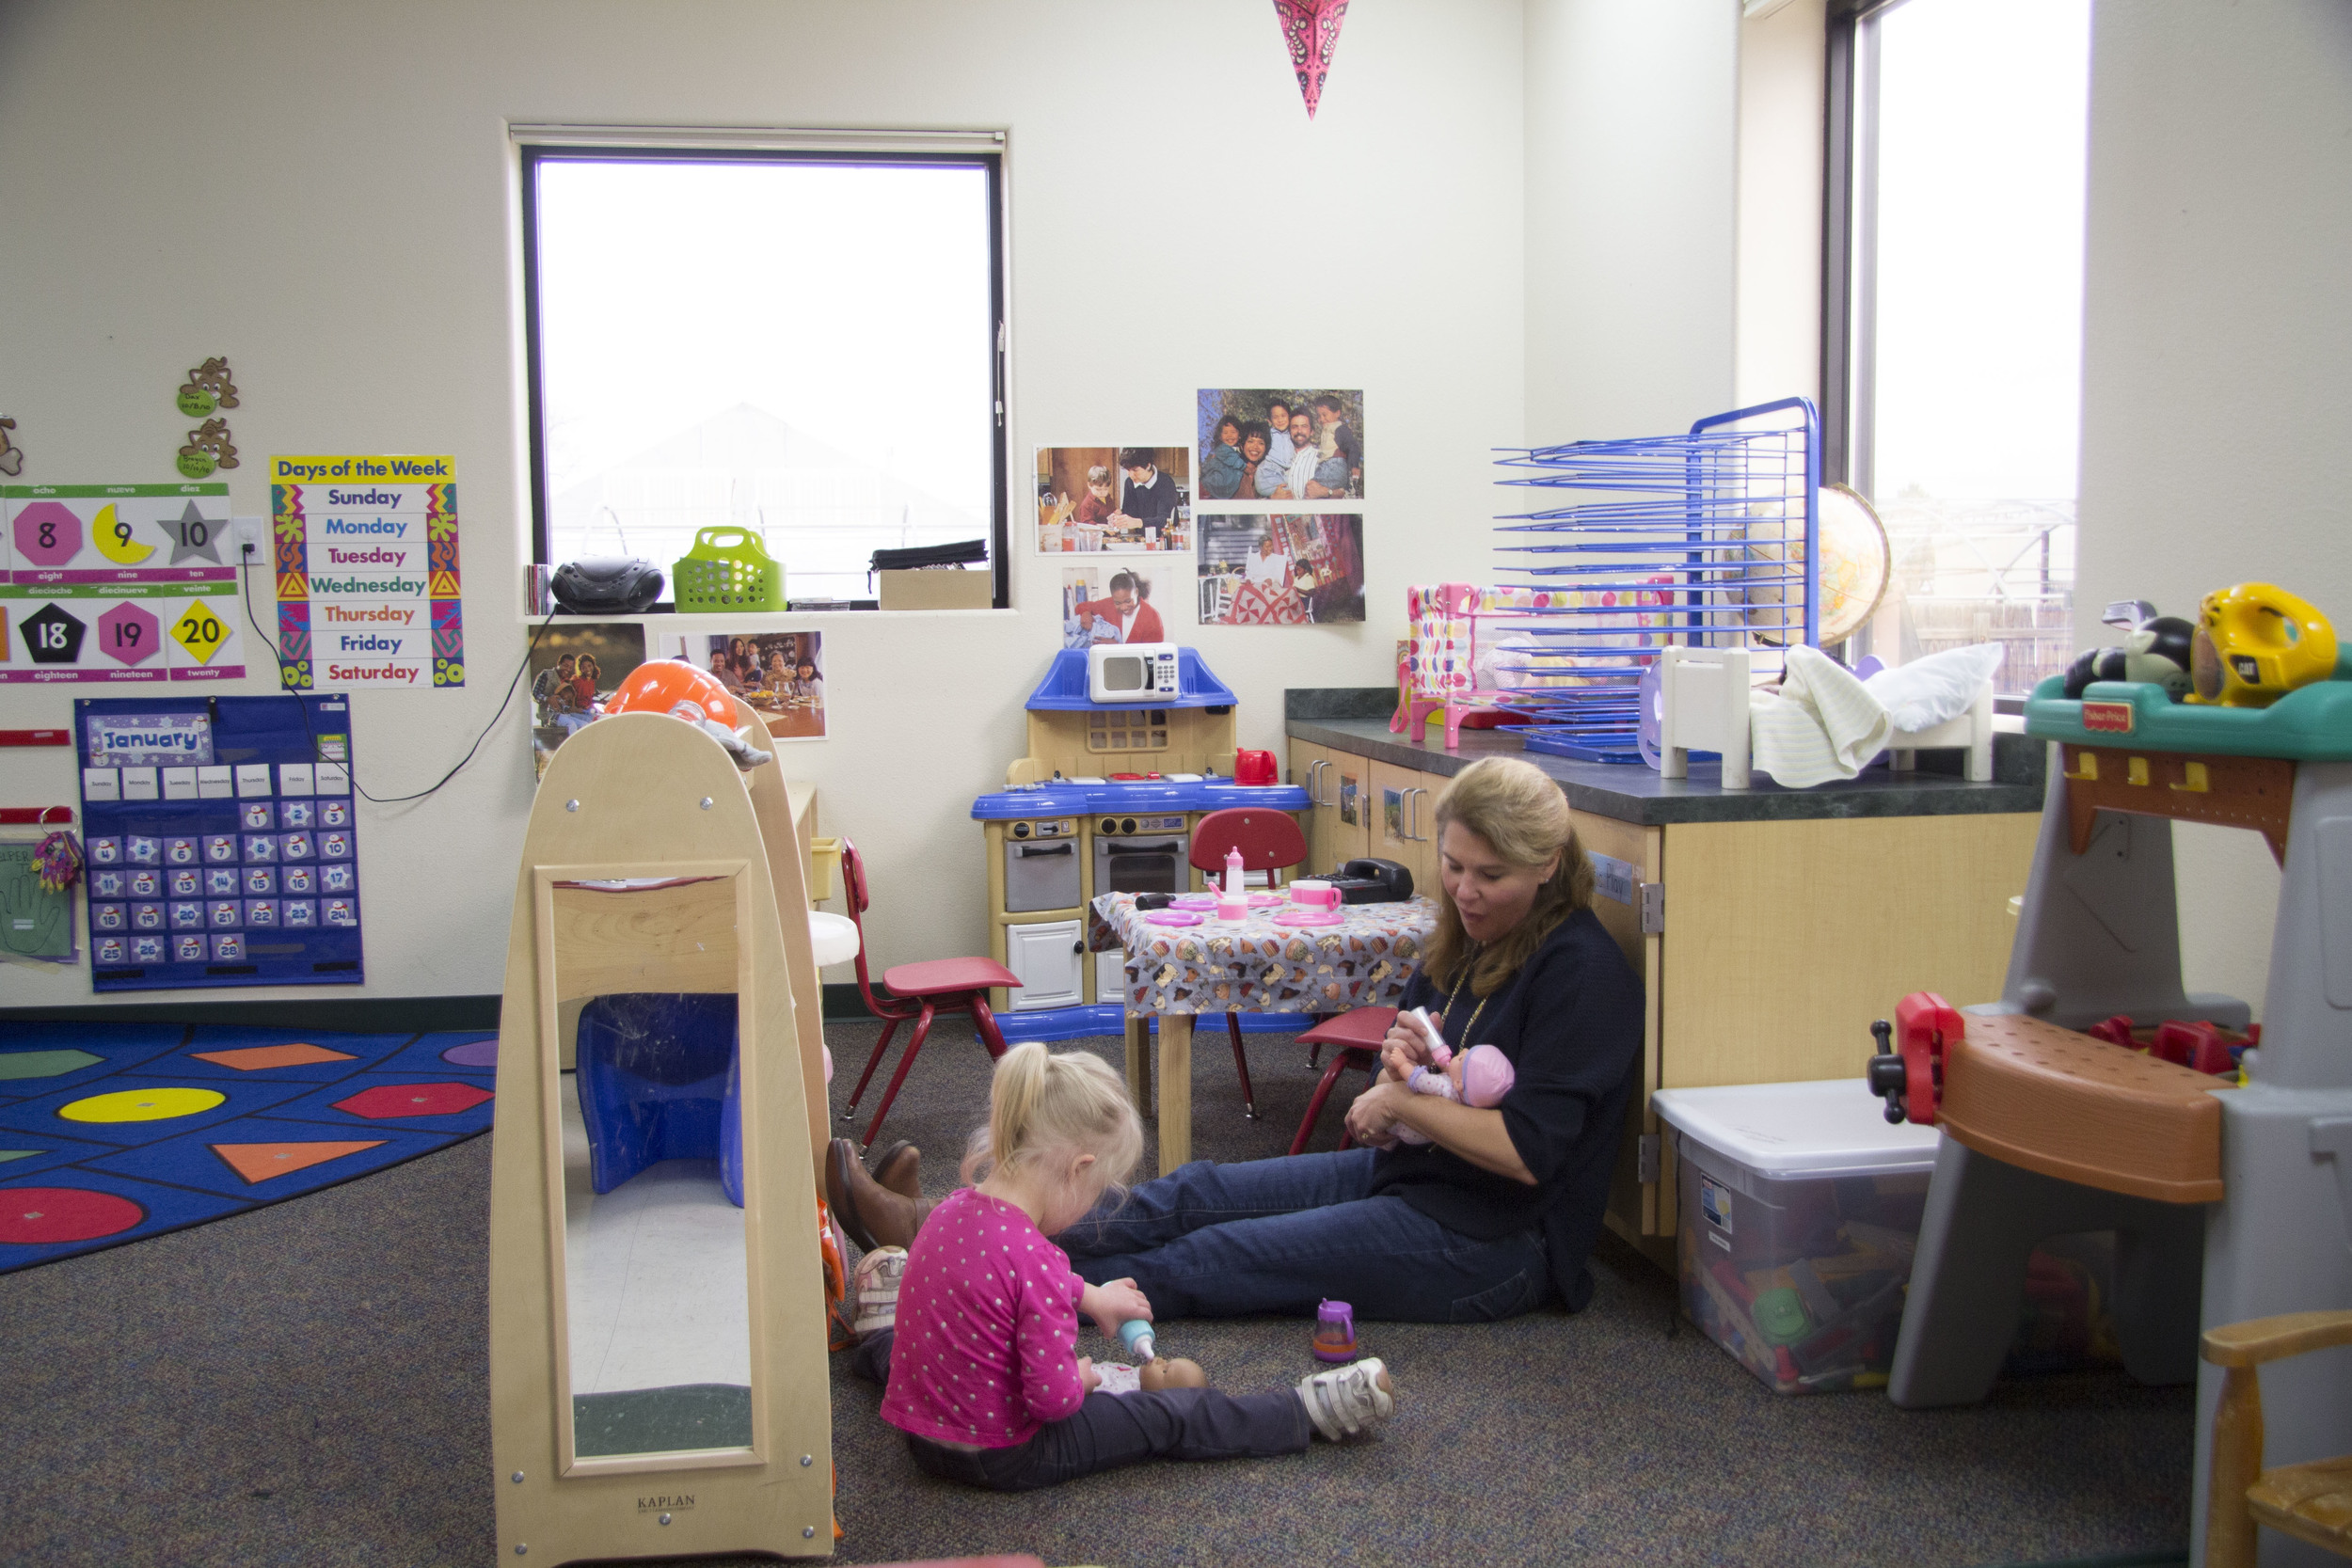 A teacher plays one on one with a child in a tlc preschool classroom